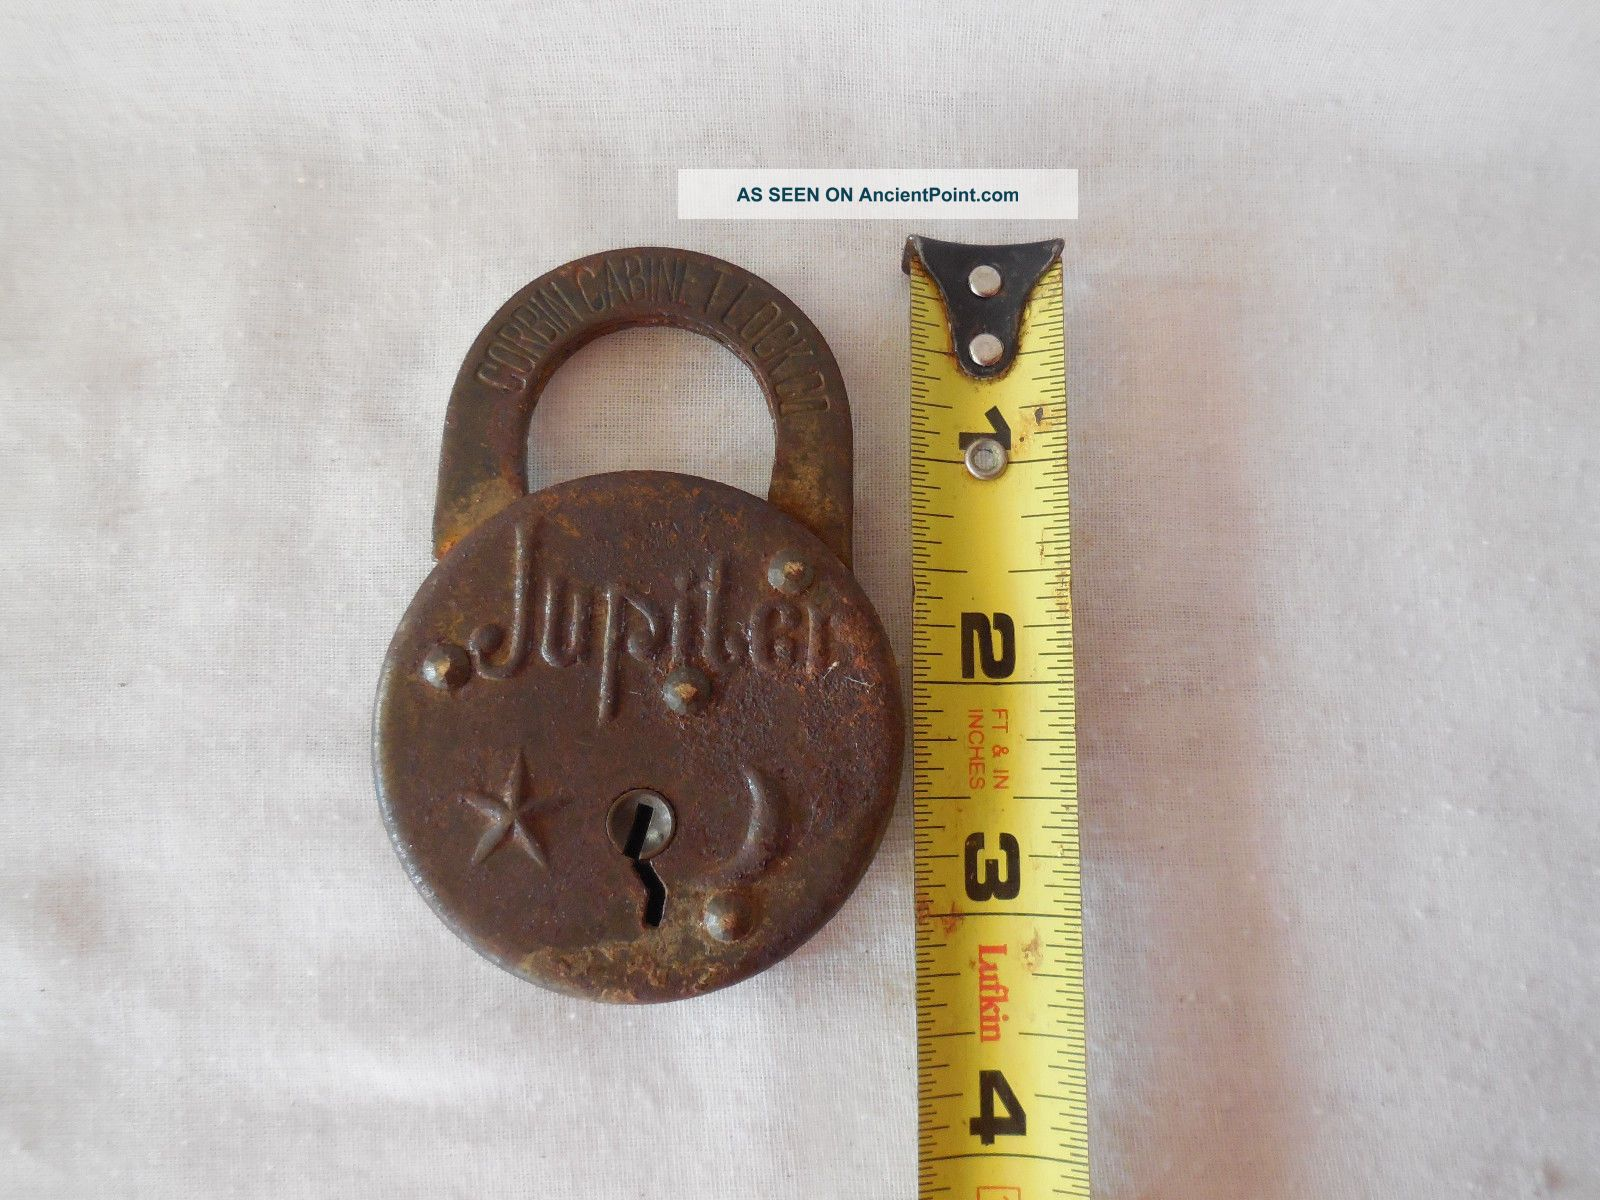 Primitive Antique Vintage Padlock Lock Oak Leaf Belmont Jupiter Miloco